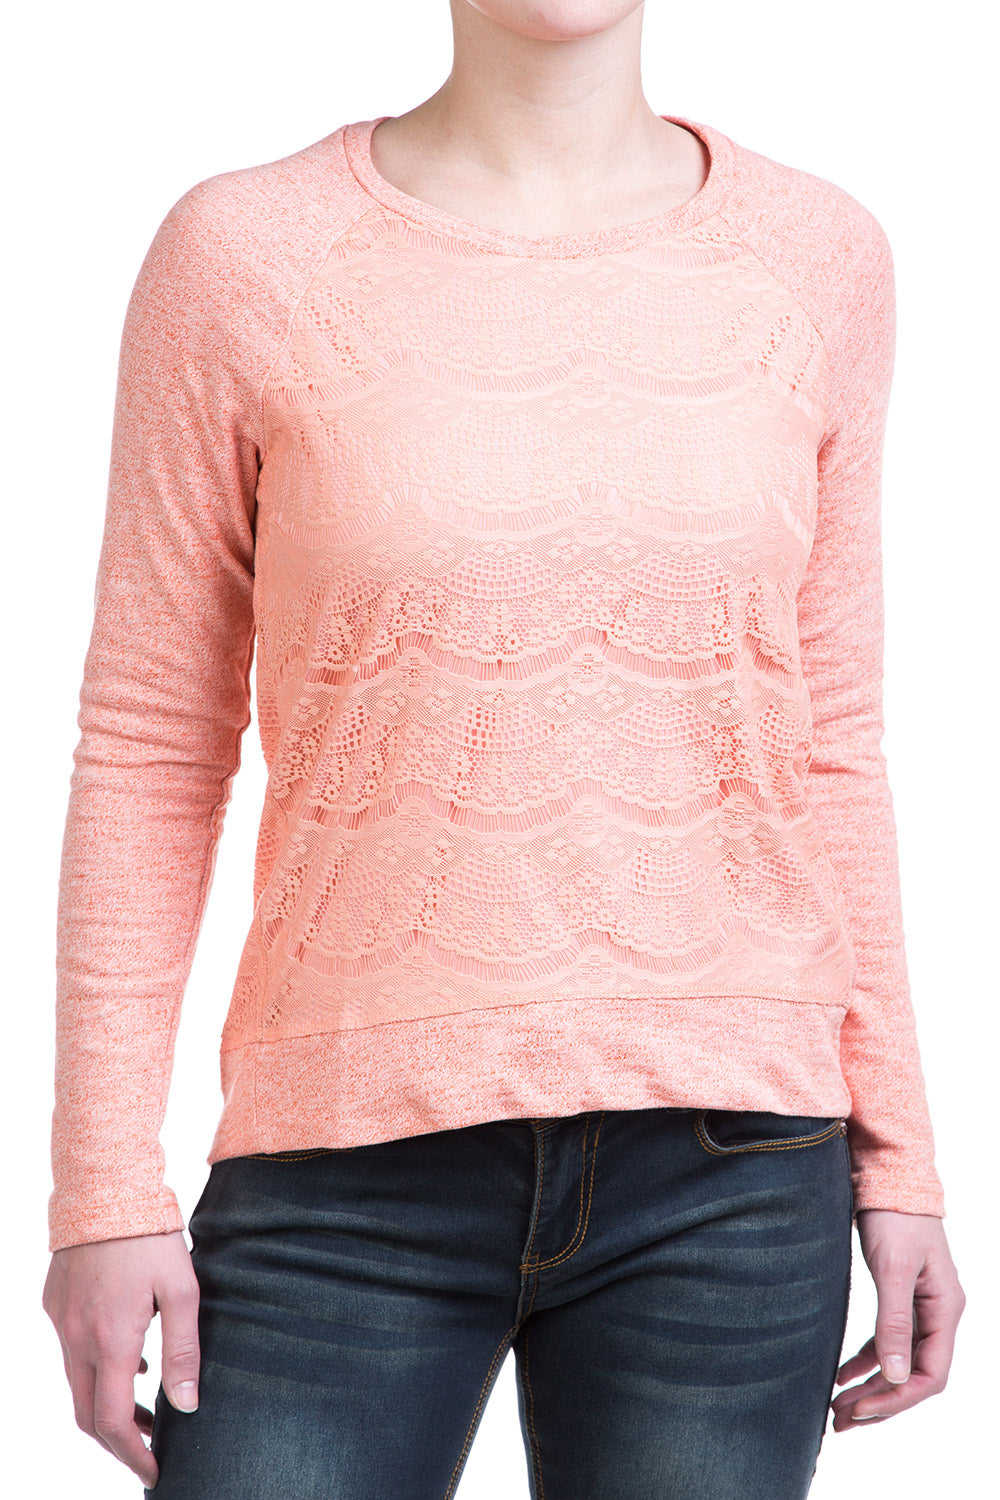 Type 3 Lace Reef Top